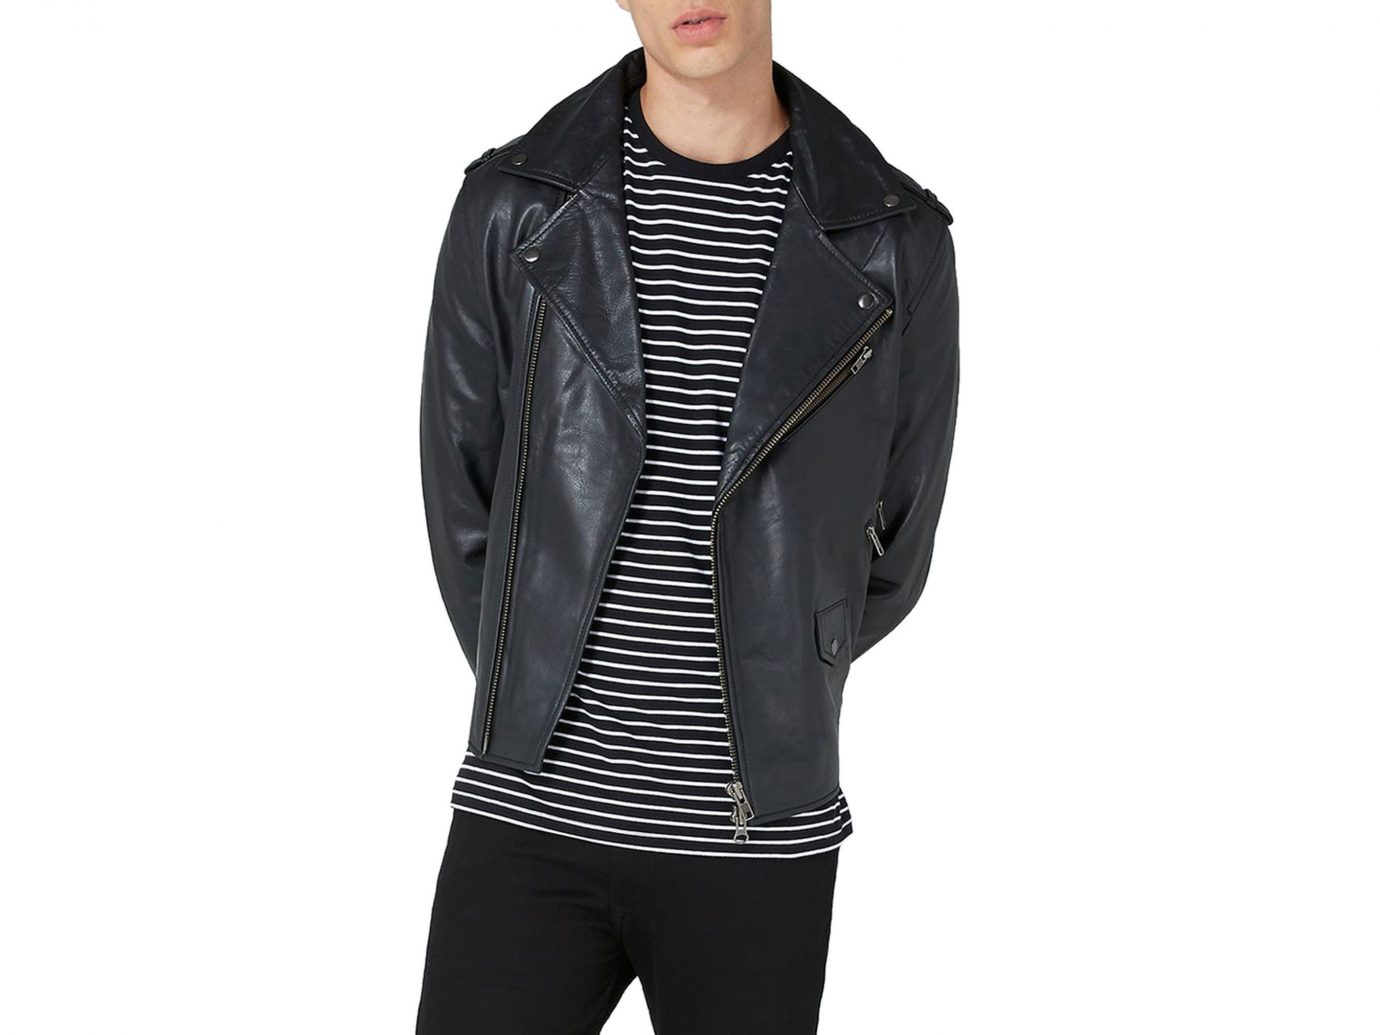 Packing Tips Style + Design Travel Shop person standing jacket leather jacket leather posing product